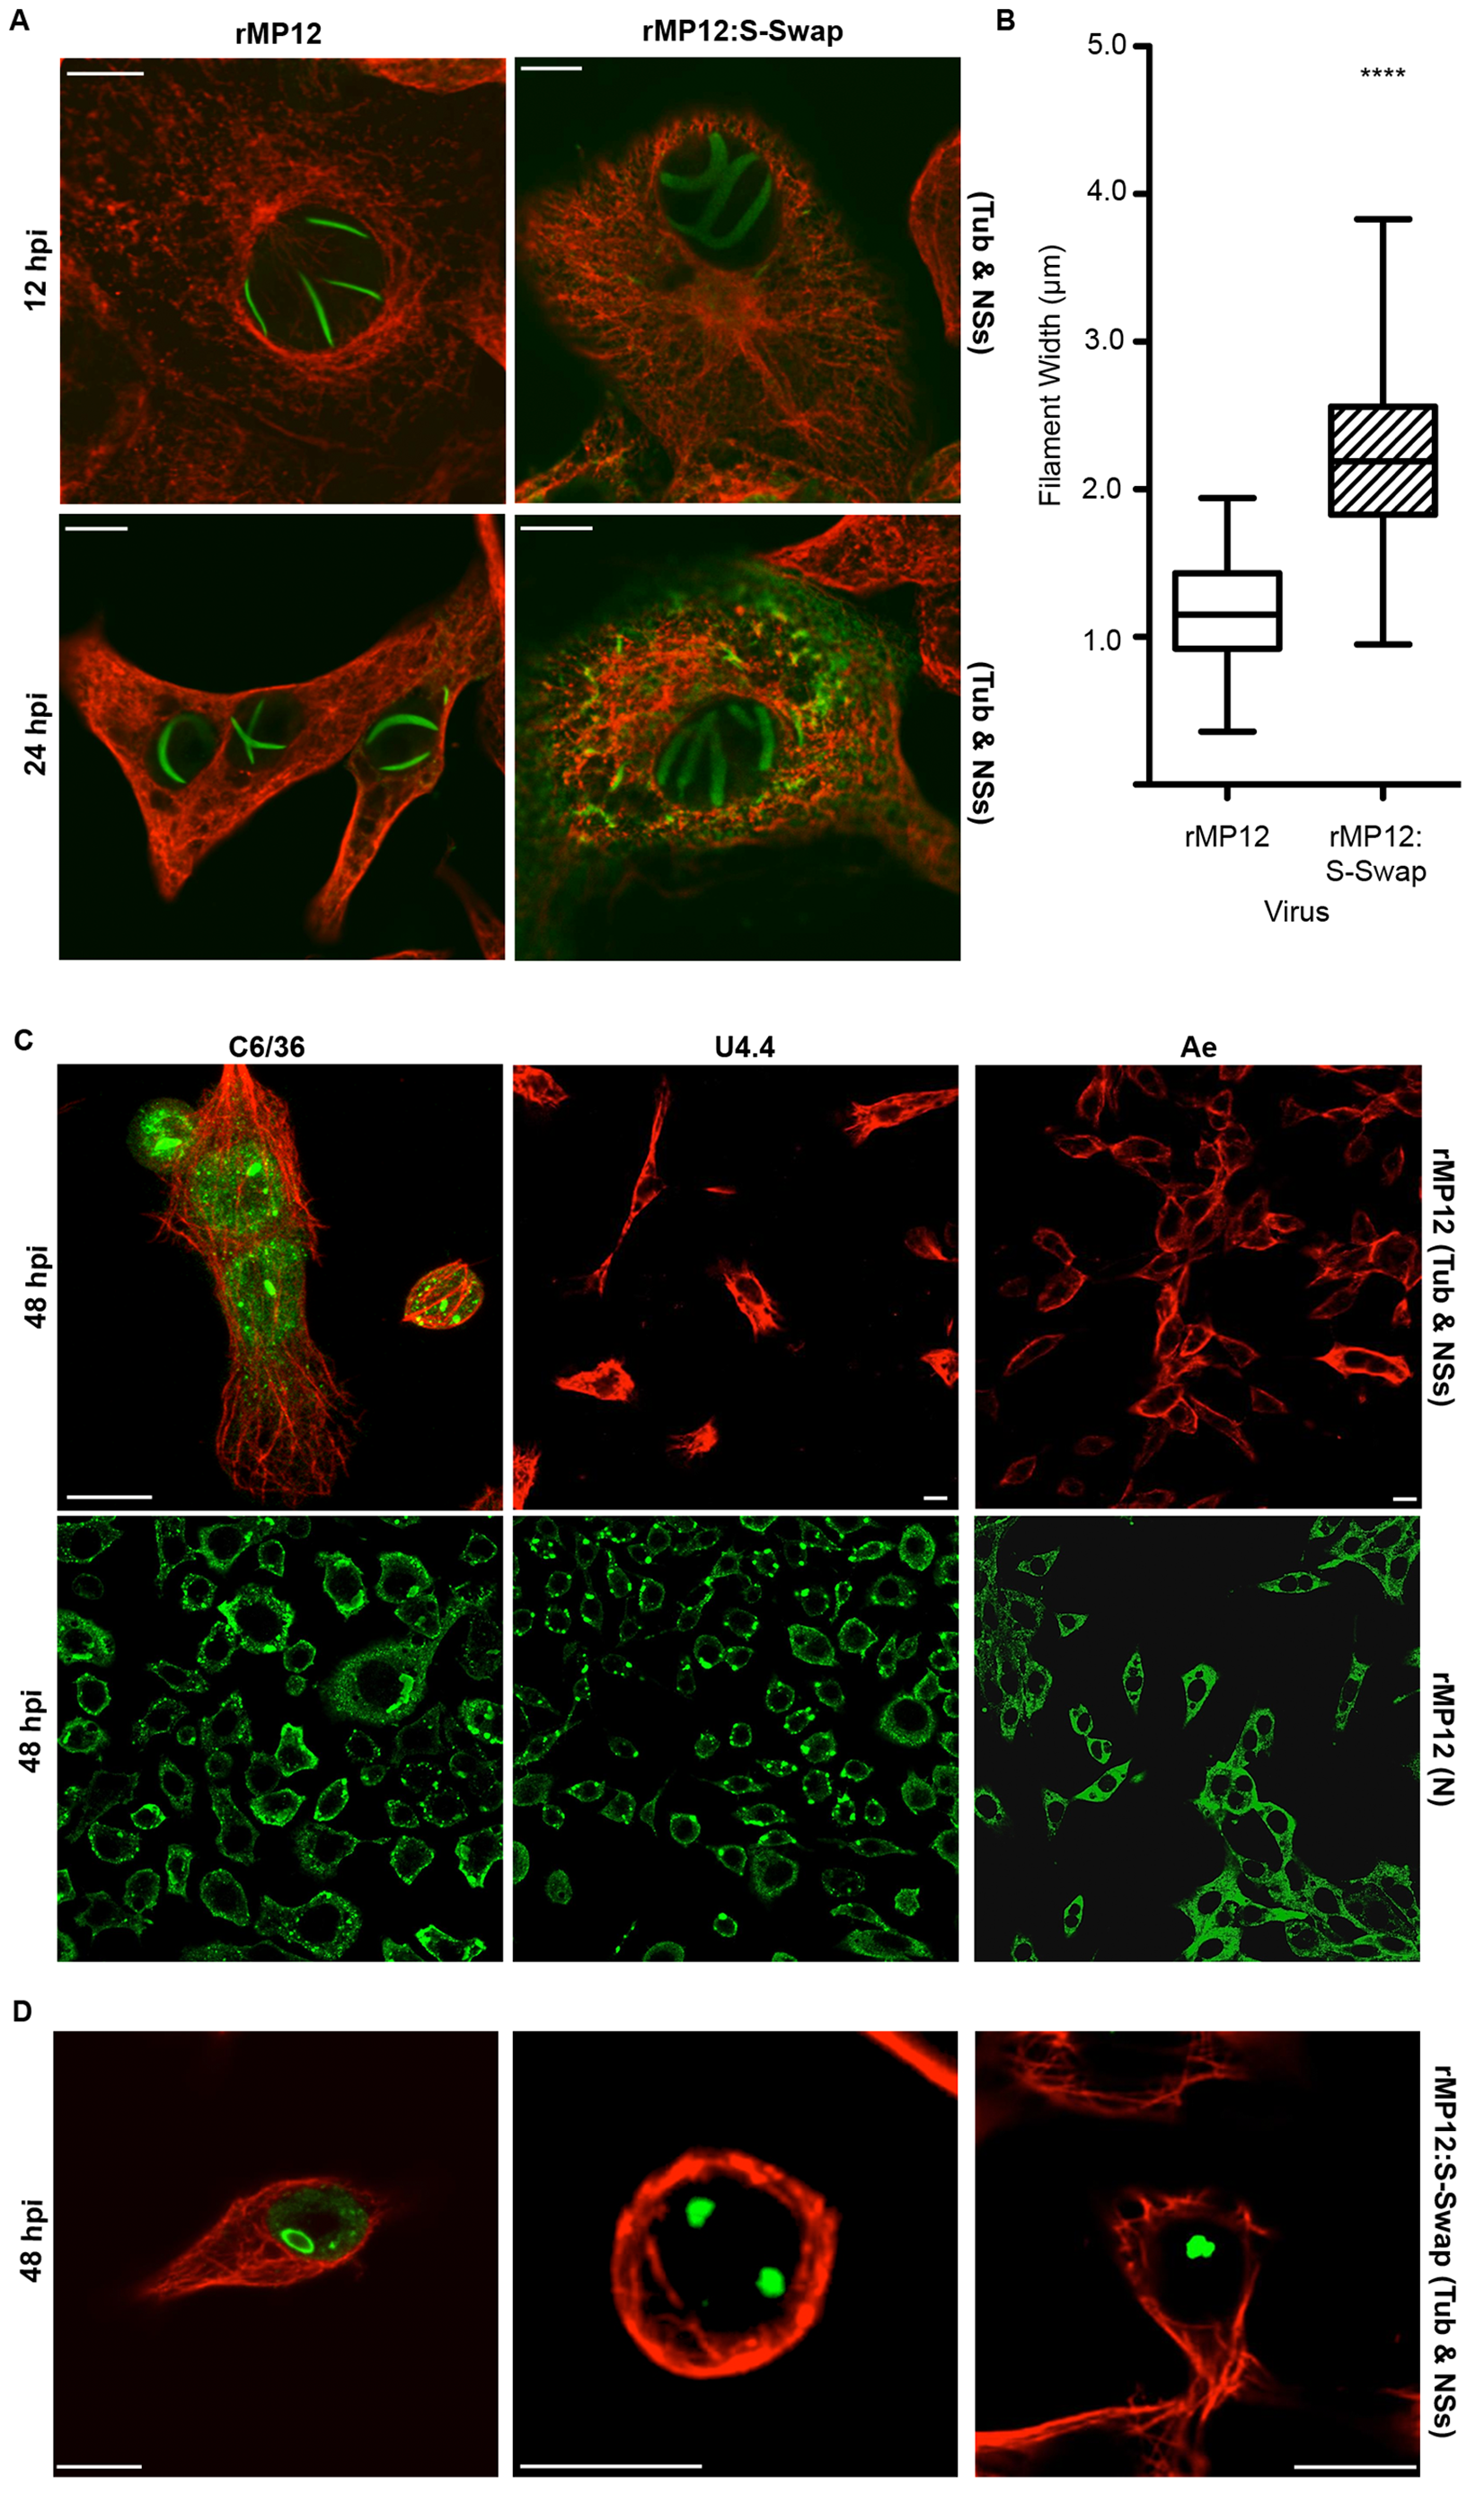 Intracellular localization of NSs in rMP12- or rMP12:S-Swap-infected cells.